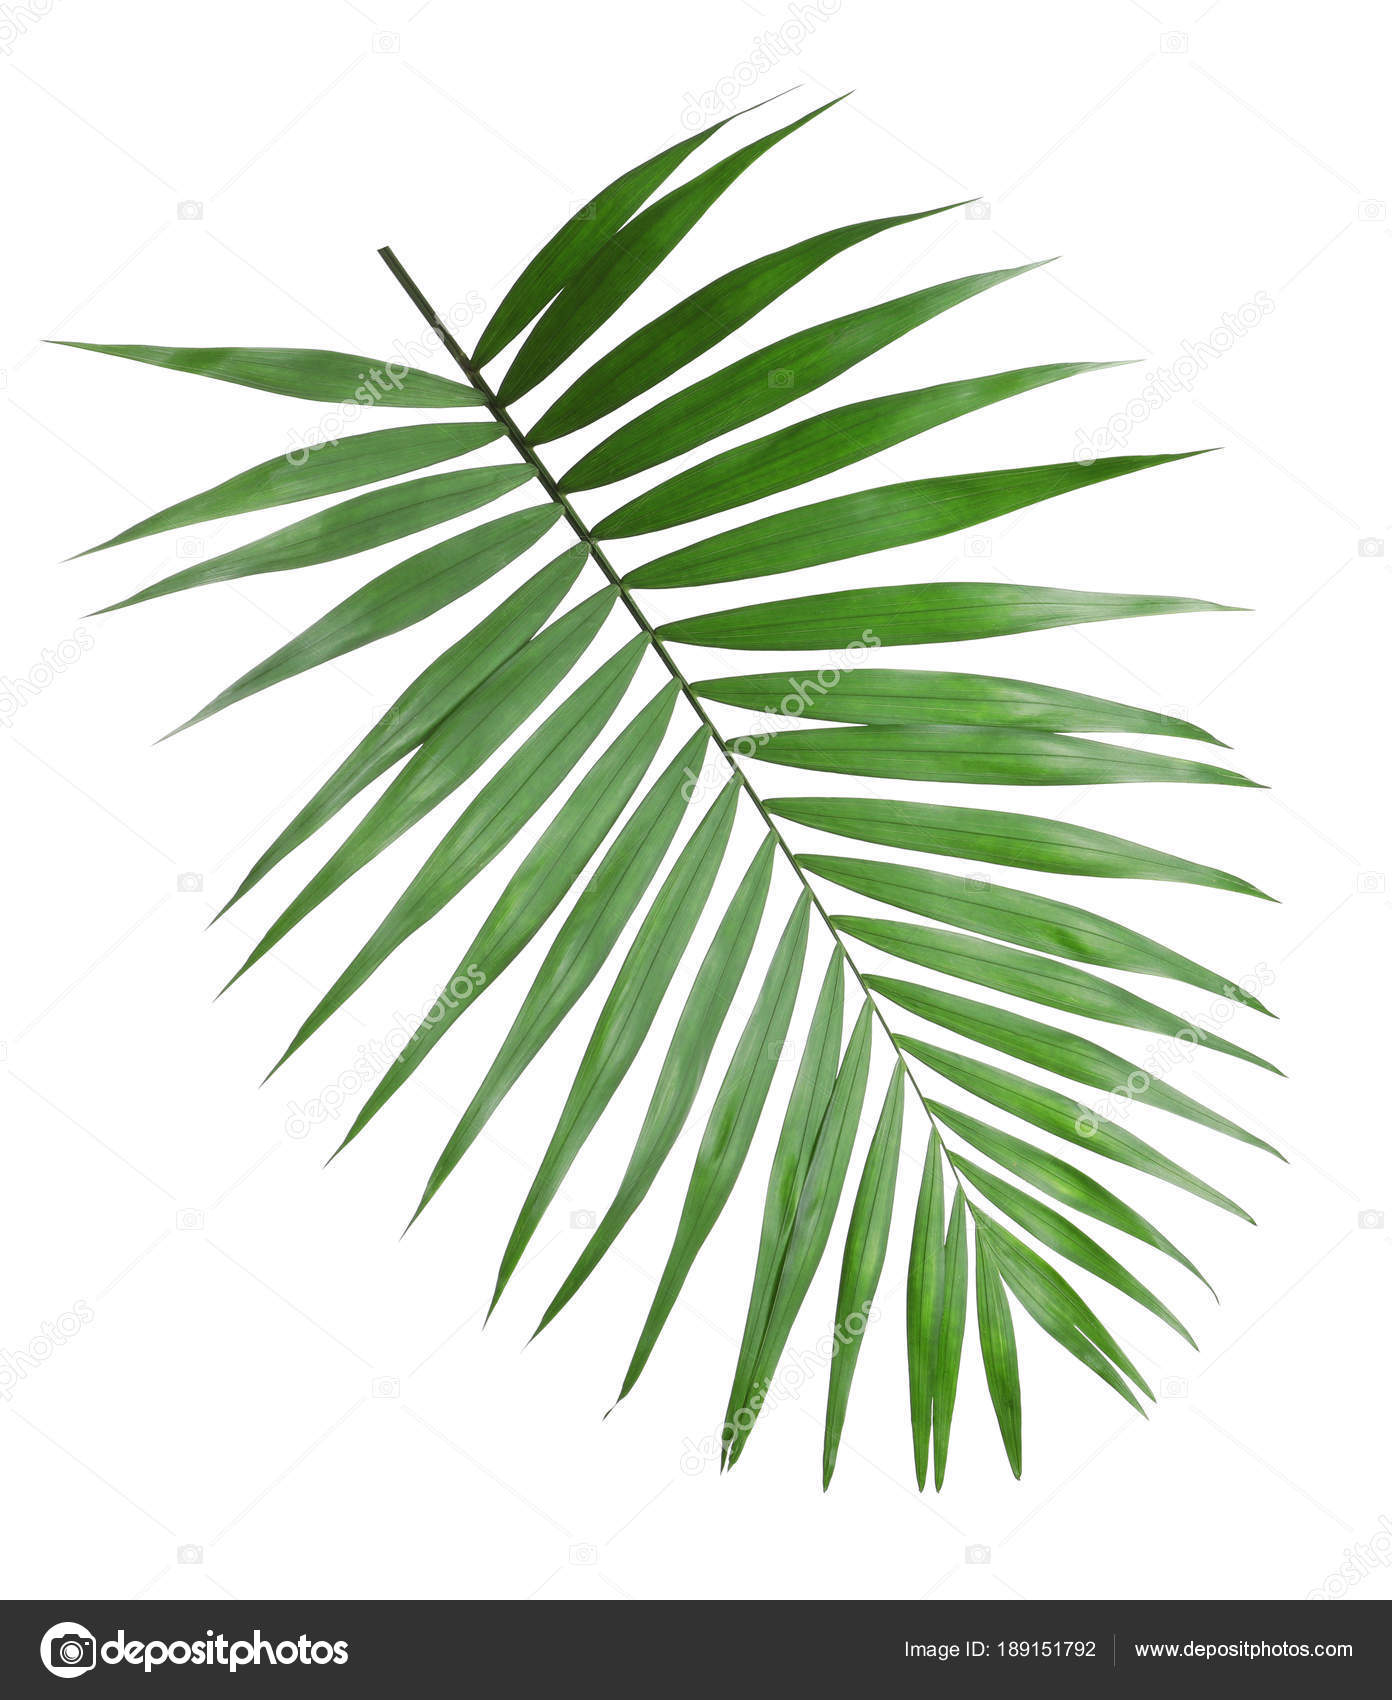 Tropical Howea Palm Tree Leaves Isolated On White Stock Photo C Liudmilachernetska Gmail Com 189151792